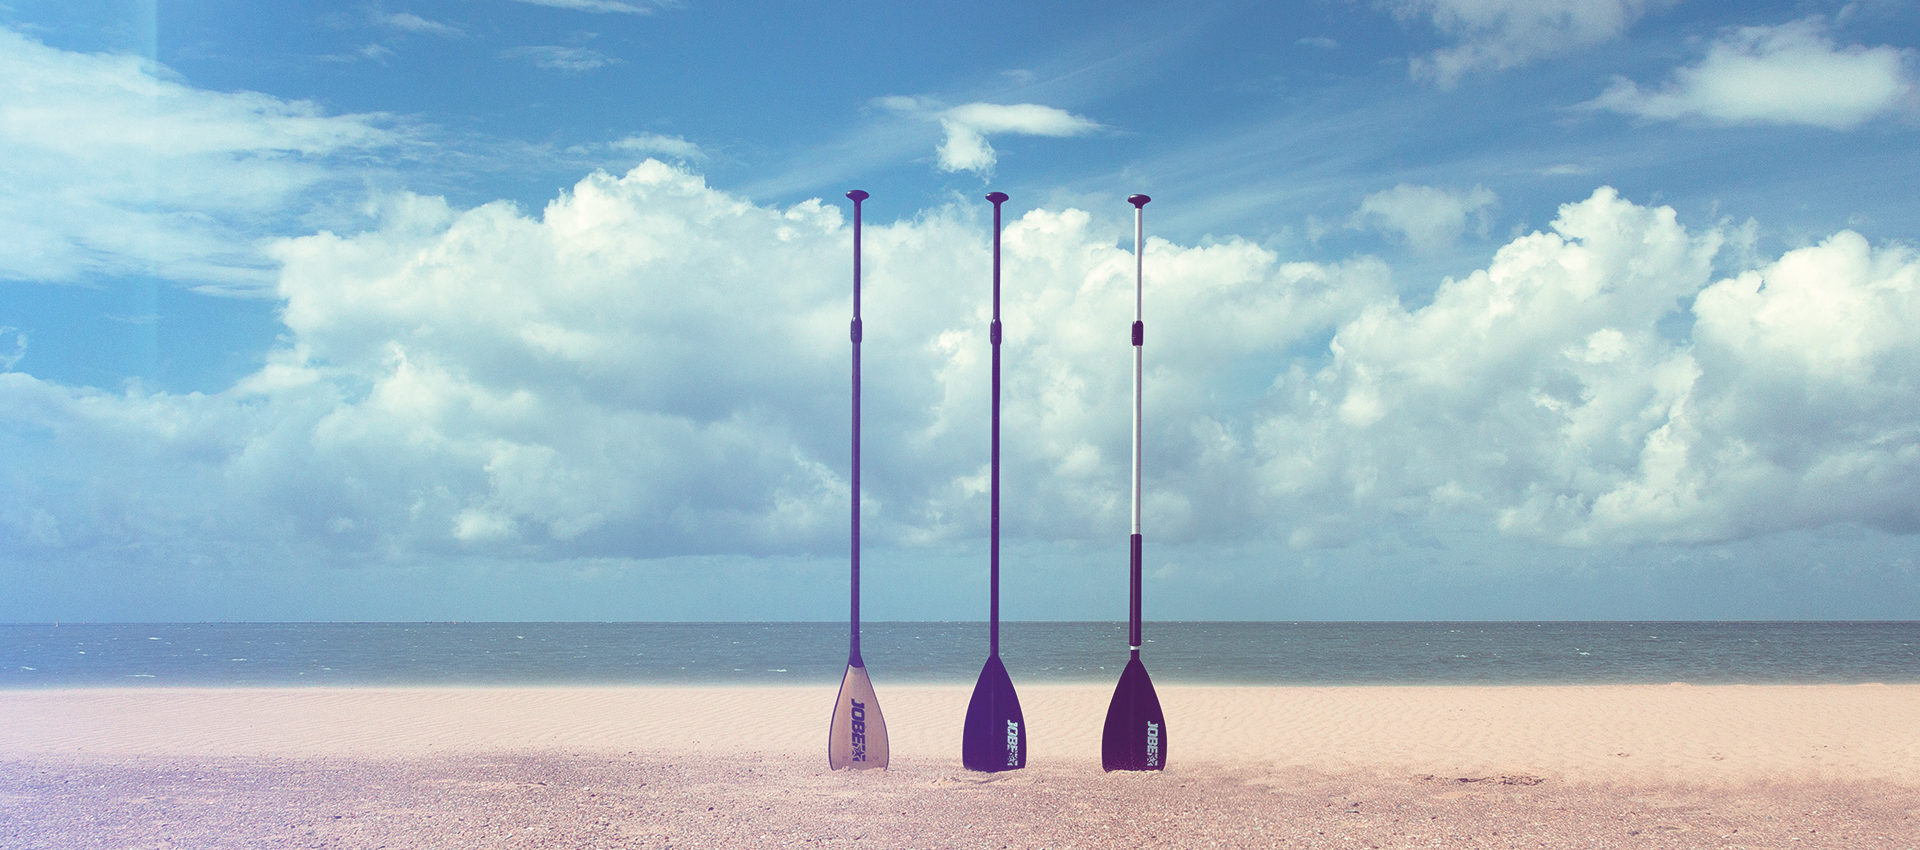 Step up your SUP game with the carbon paddle!